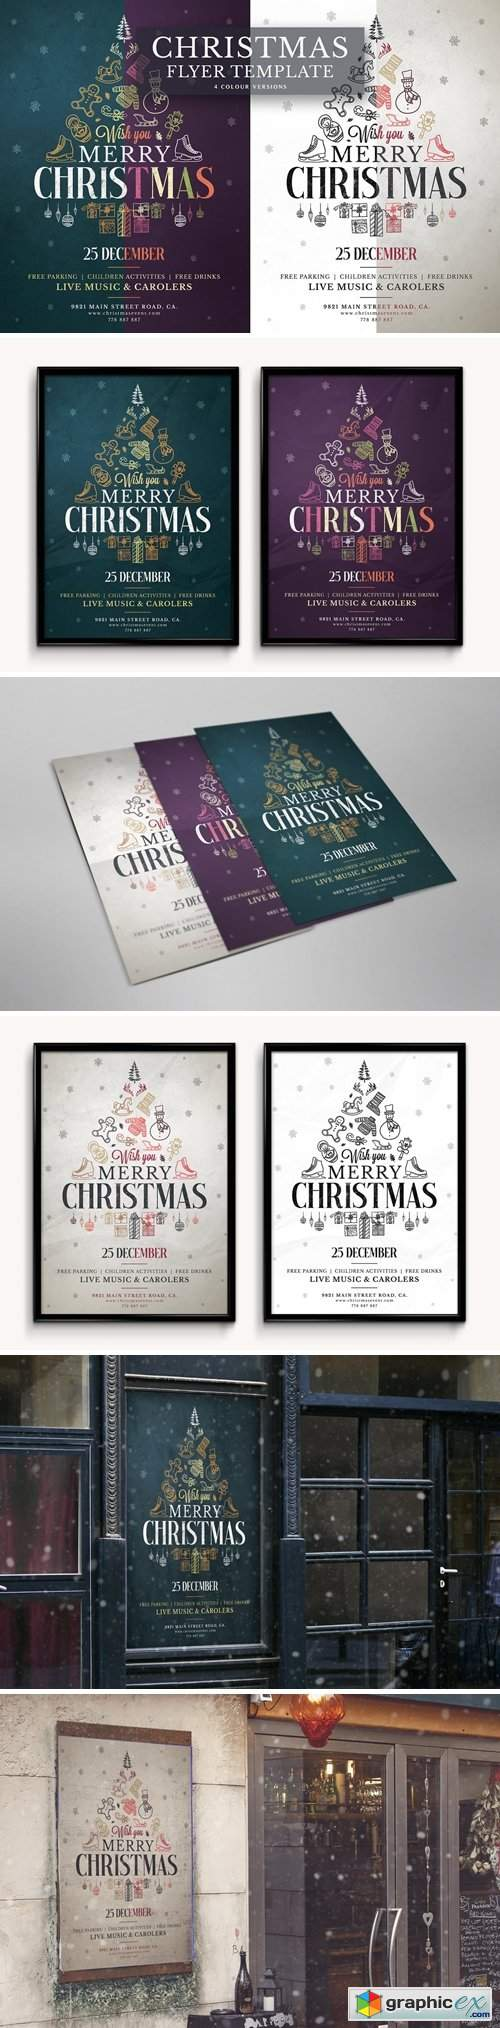 Christmas Flyer Template Vol.5